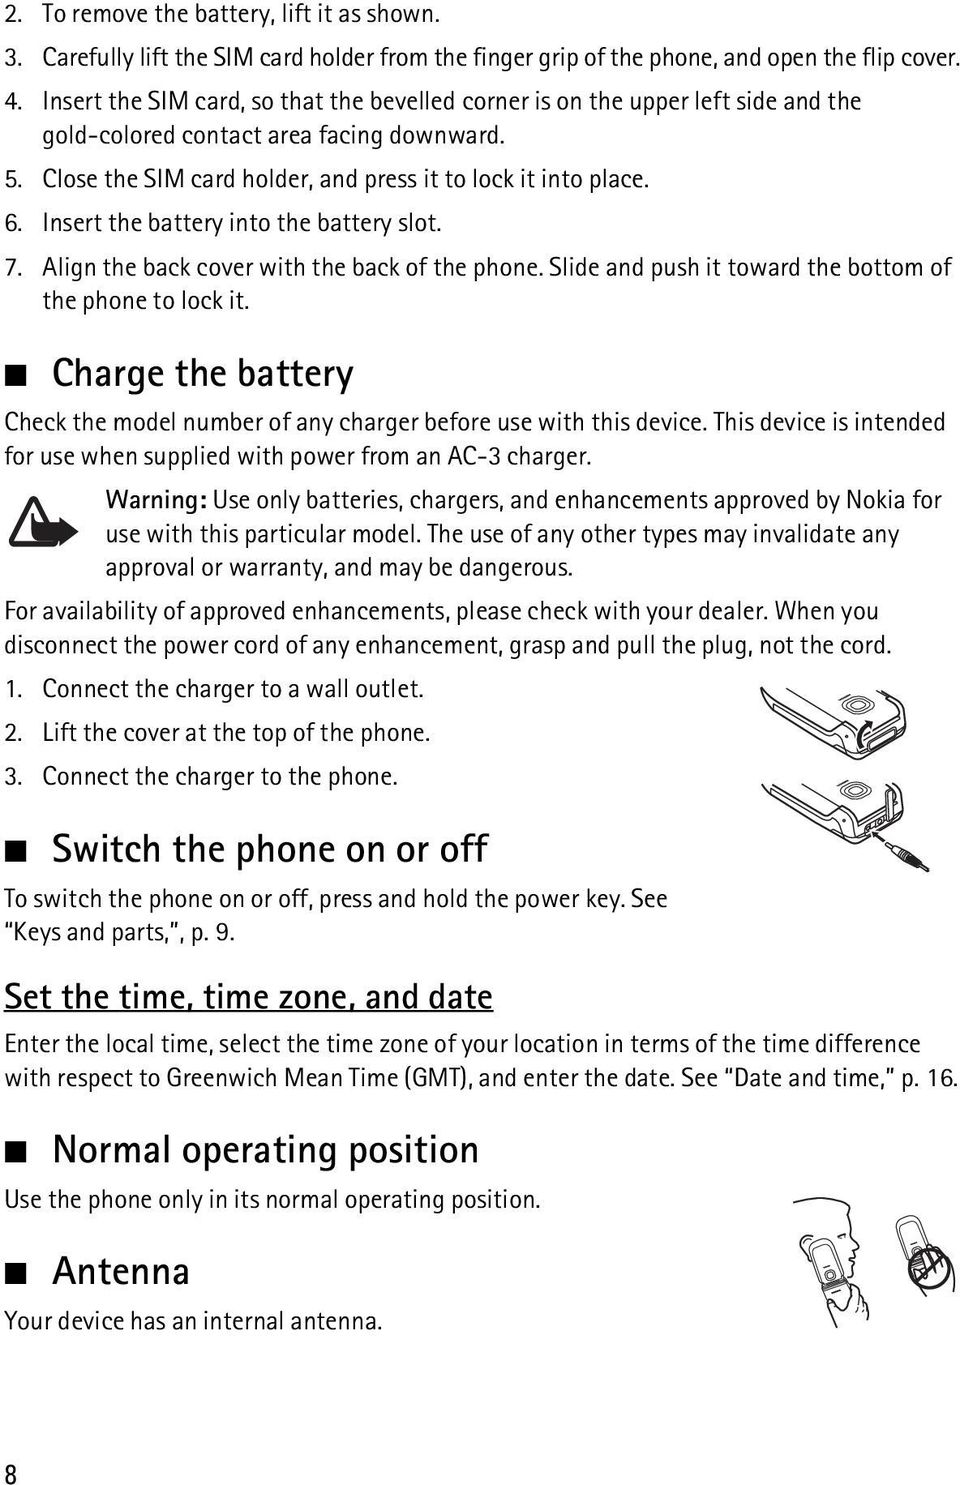 Insert the battery into the battery slot. 7. Align the back cover with the back of the phone. Slide and push it toward the bottom of the phone to lock it.